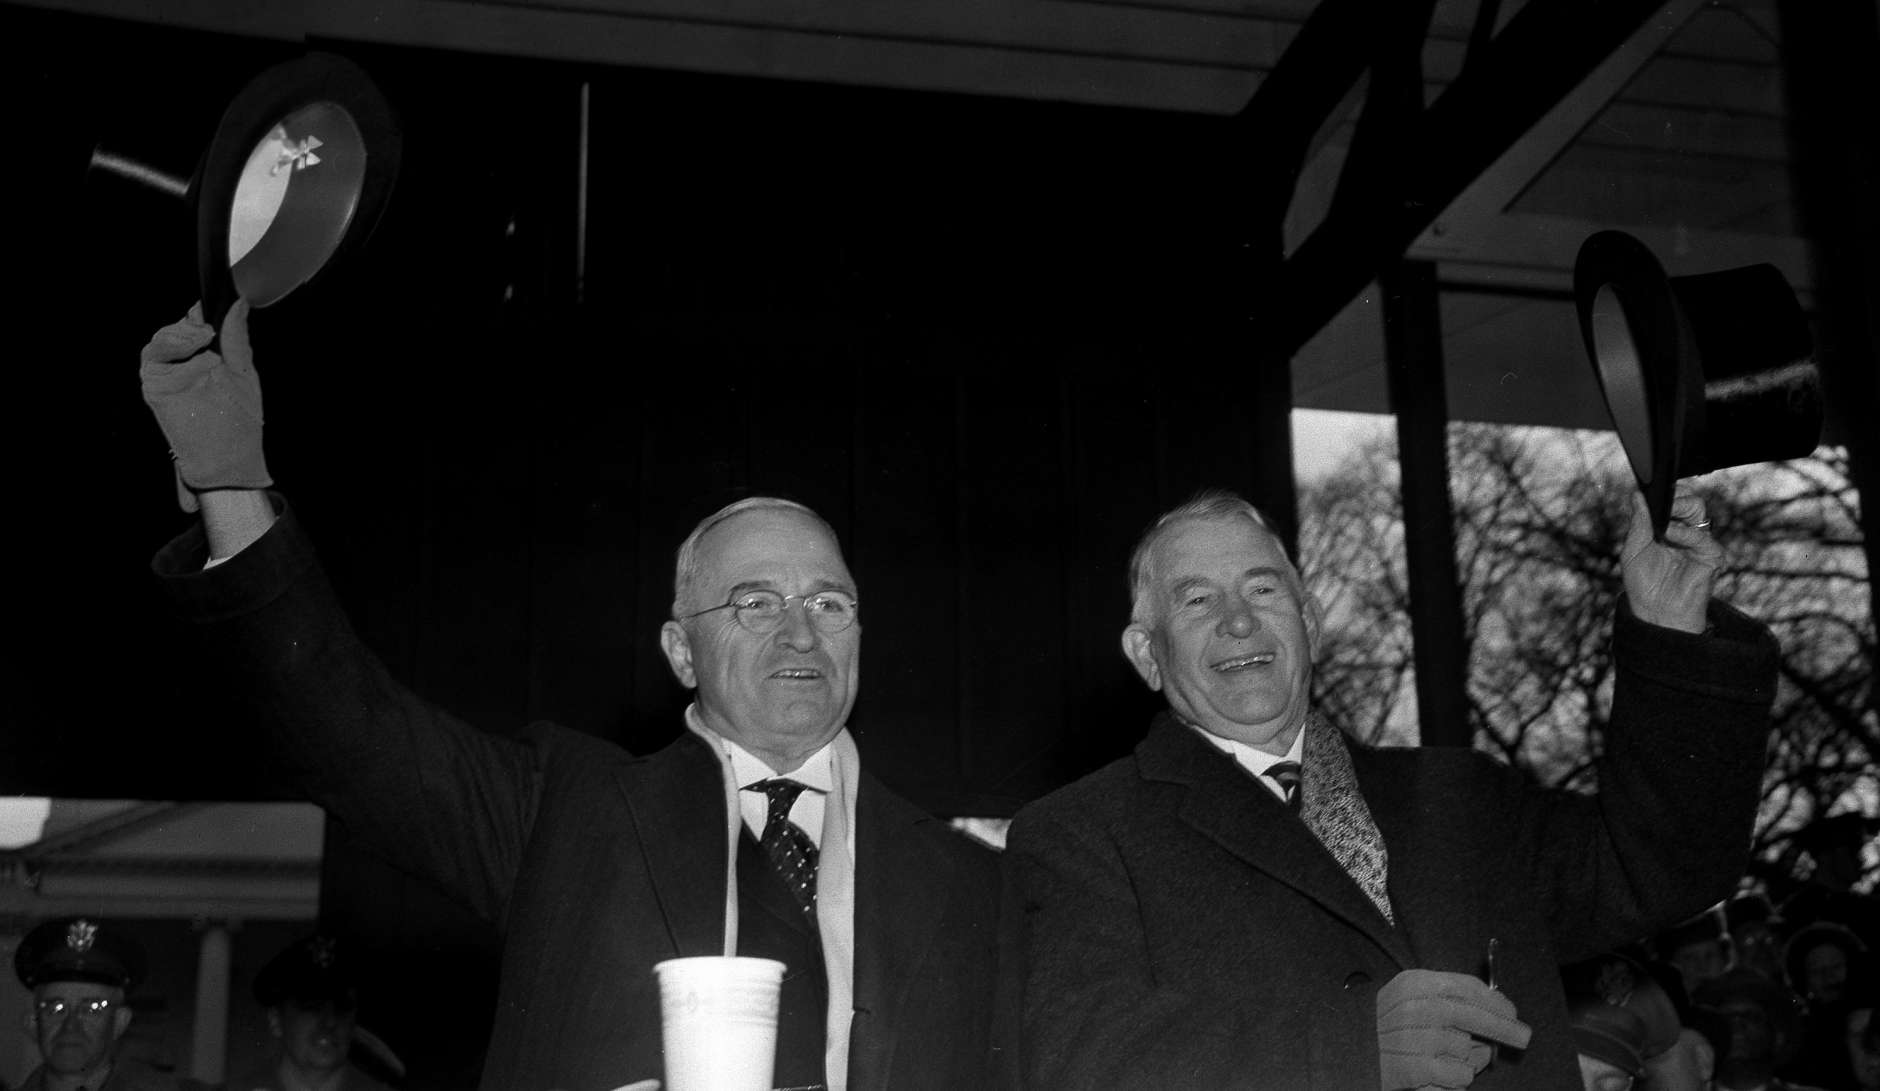 U.S. President Harry S. Truman, left, and Vice President Alben W. Barkley wave from the inaugural parade reviewing stand in front of the White House after their inauguration in Washington, D.C., Jan. 20, 1949.  (AP Photo)